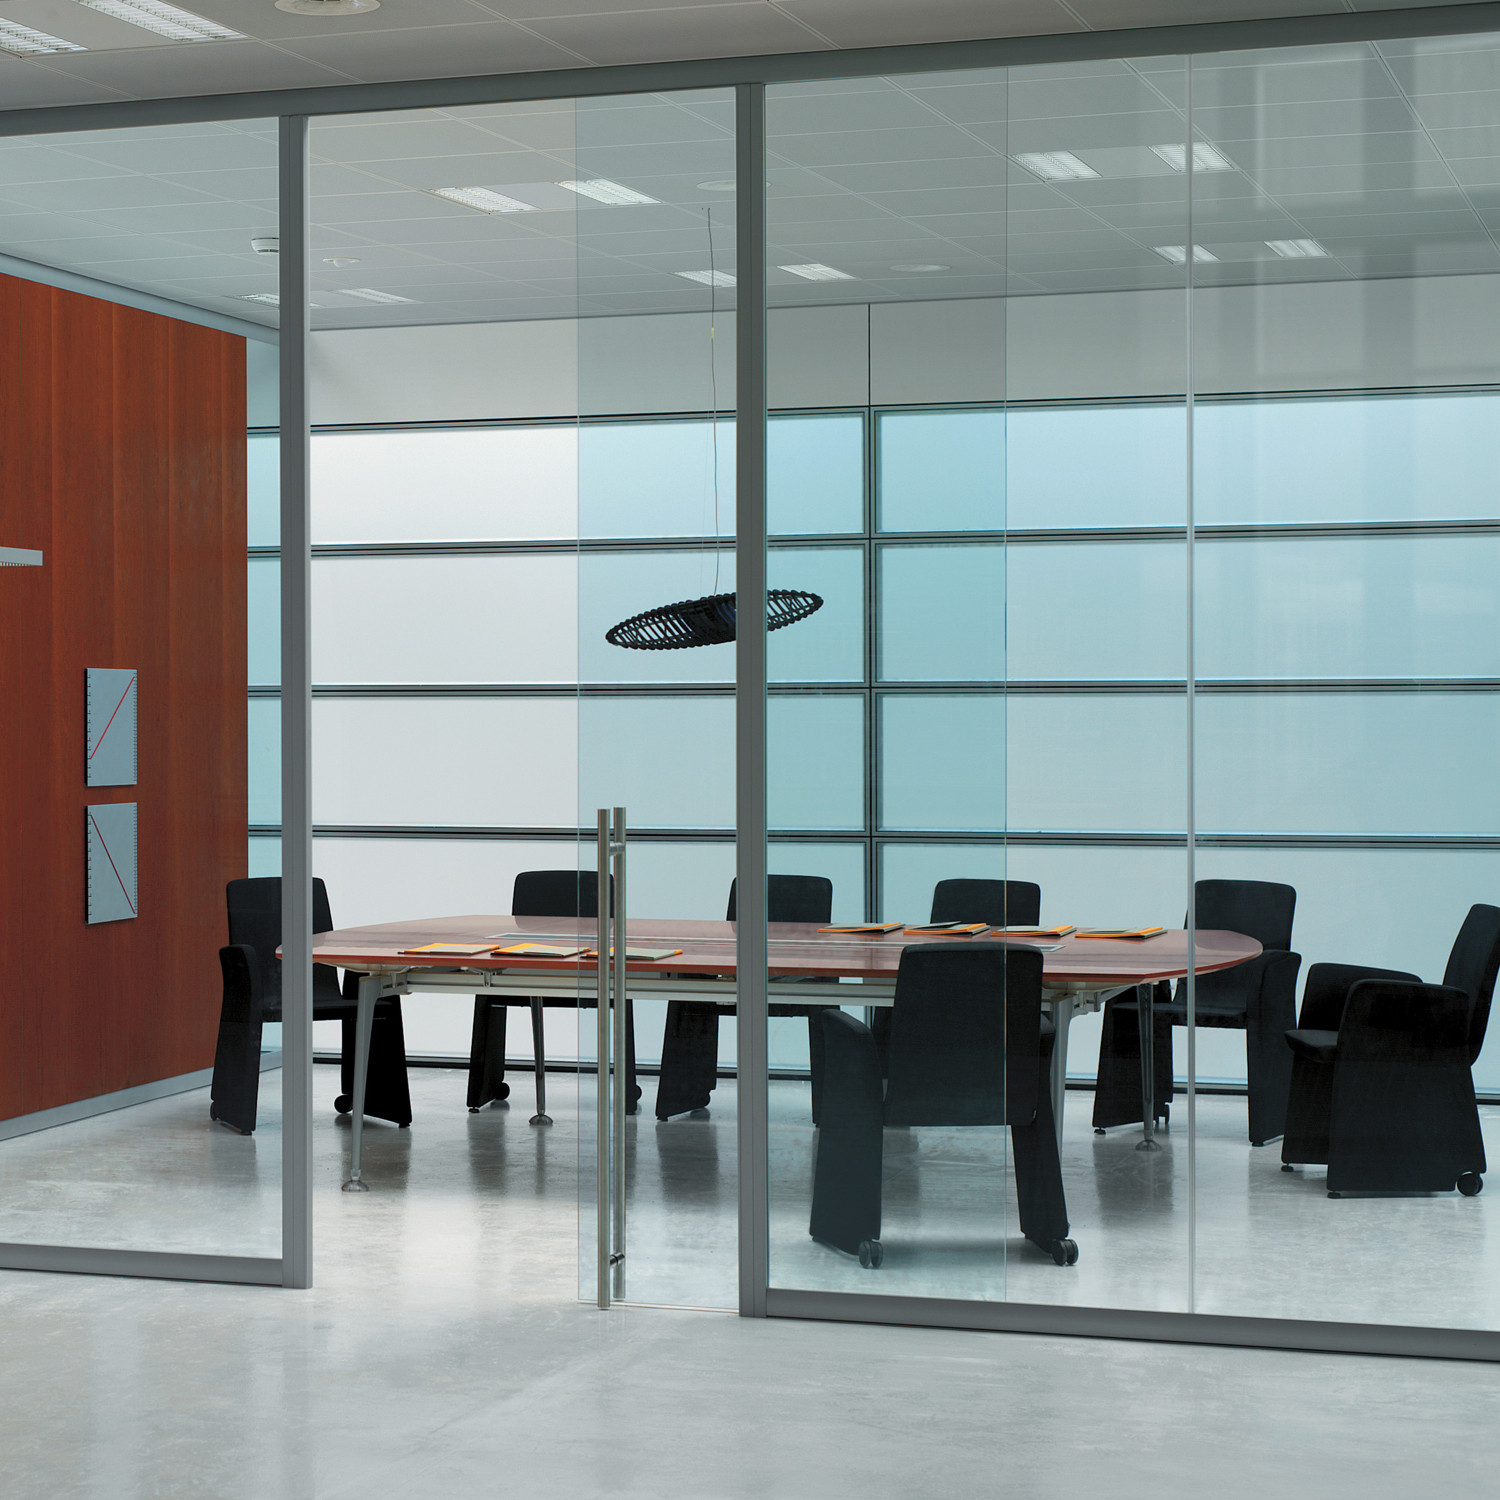 Areaplan Horizontal Panels are available in a wide variety of finishes